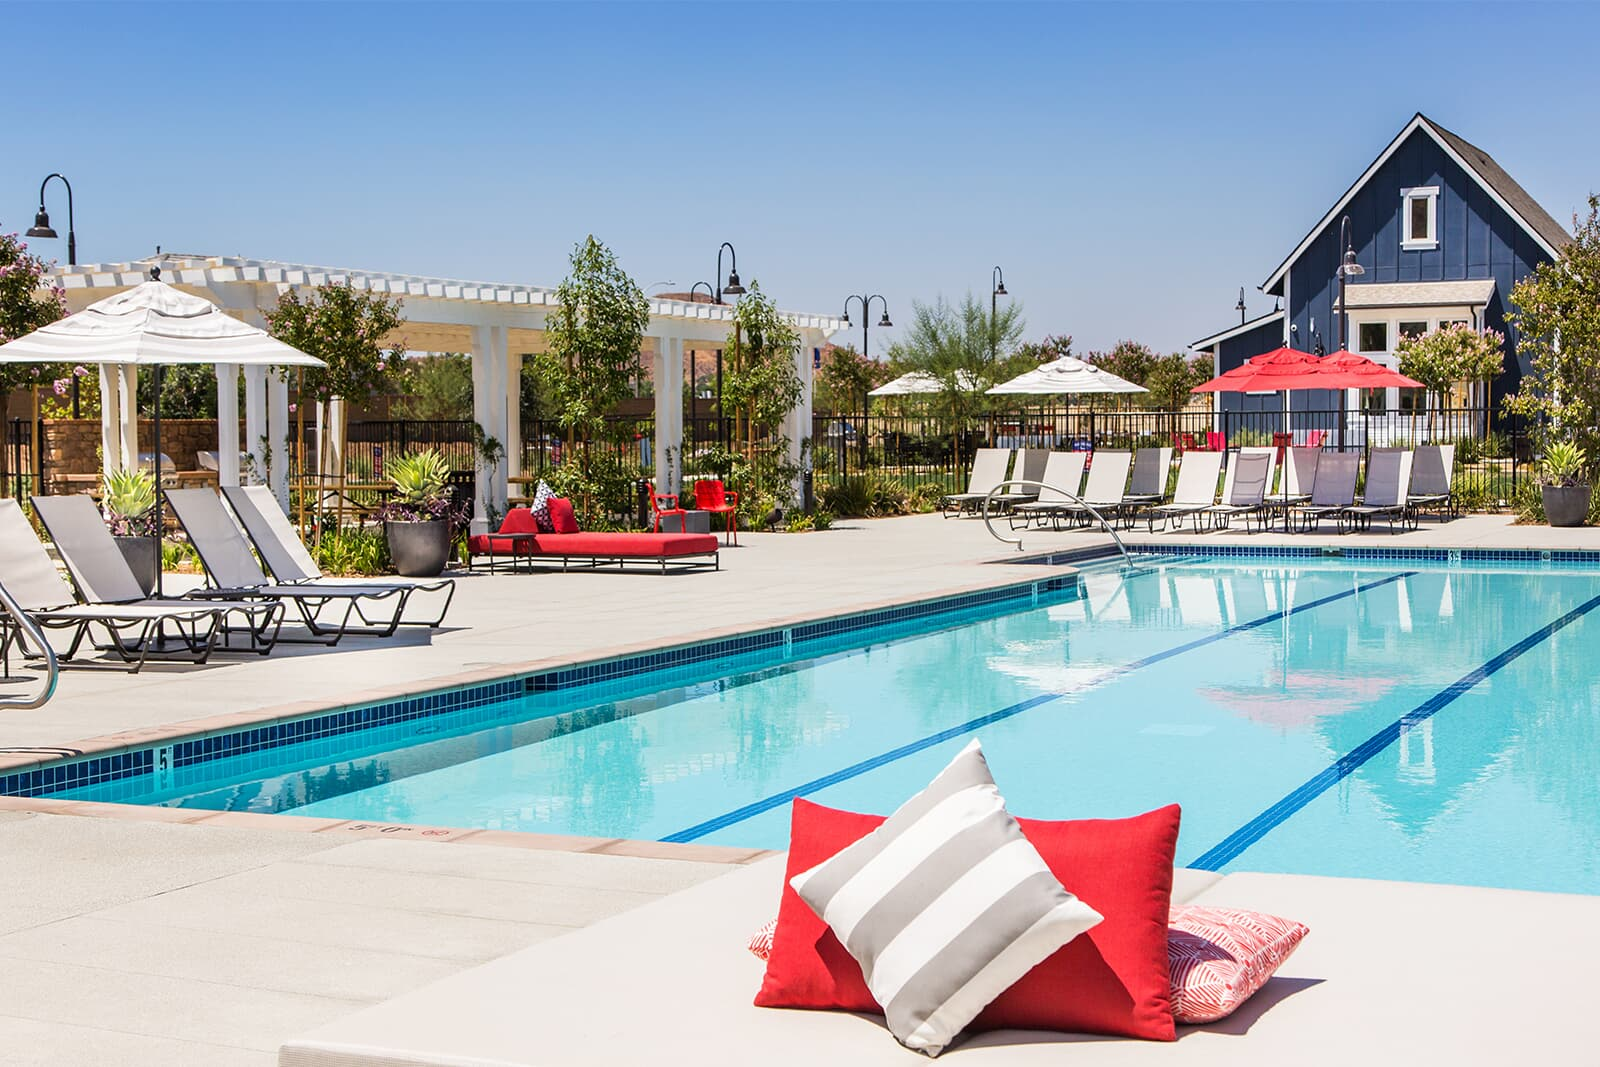 Pool | Audie Murphy Ranch in Menifee, CA | Brookfield Residential